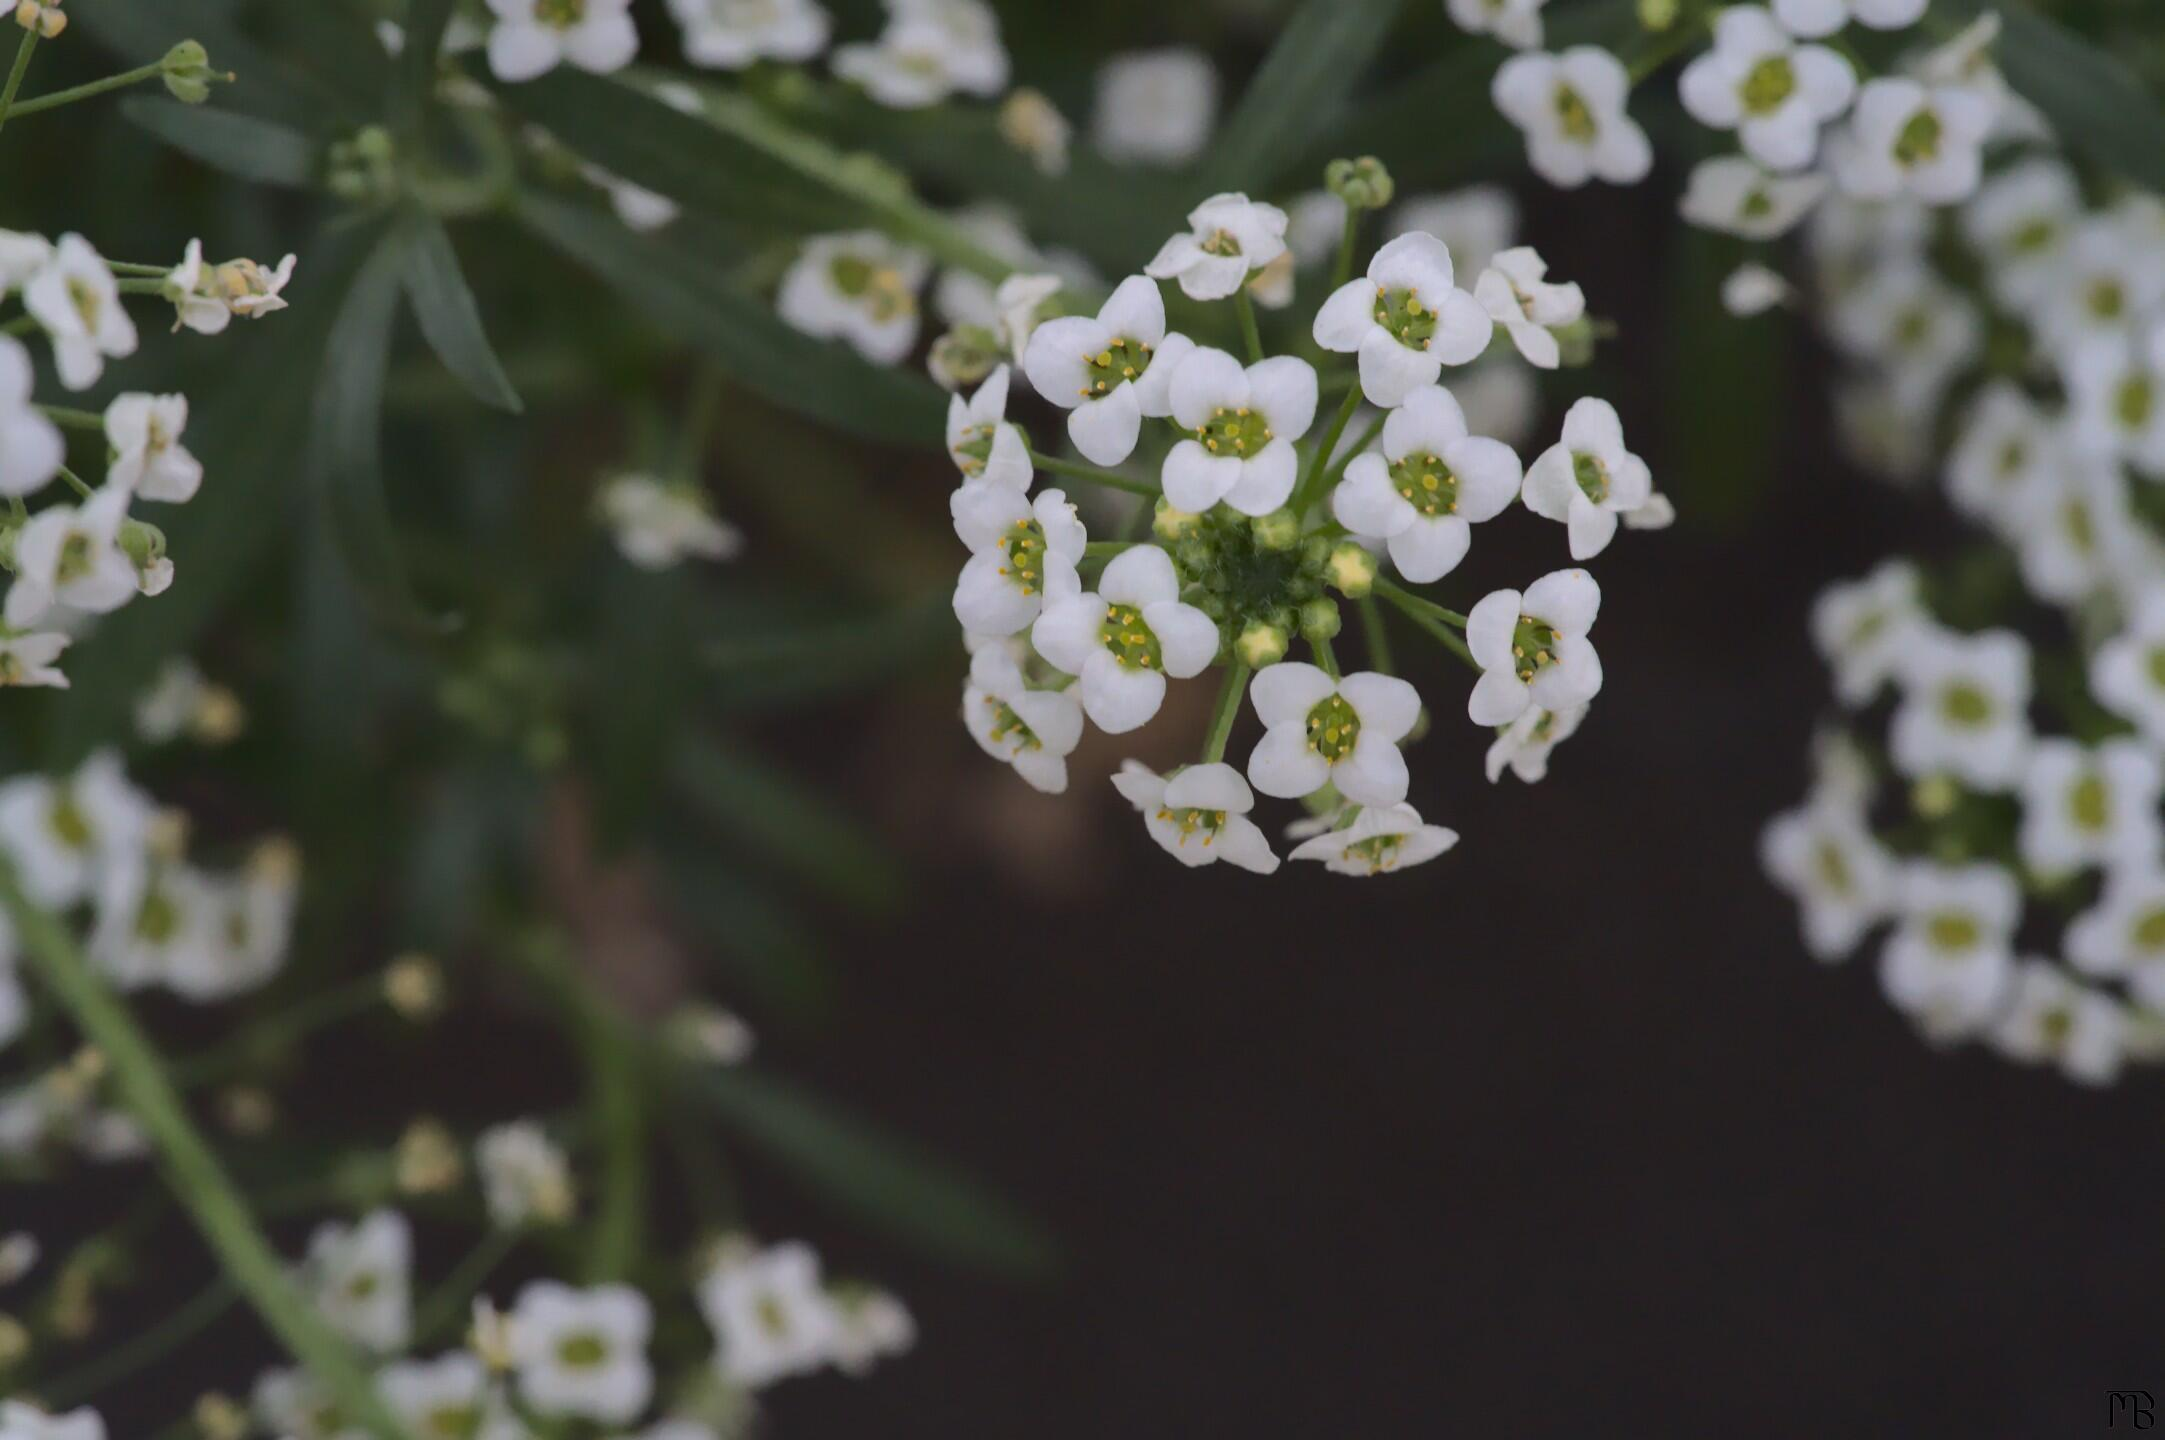 White flowers in a ball